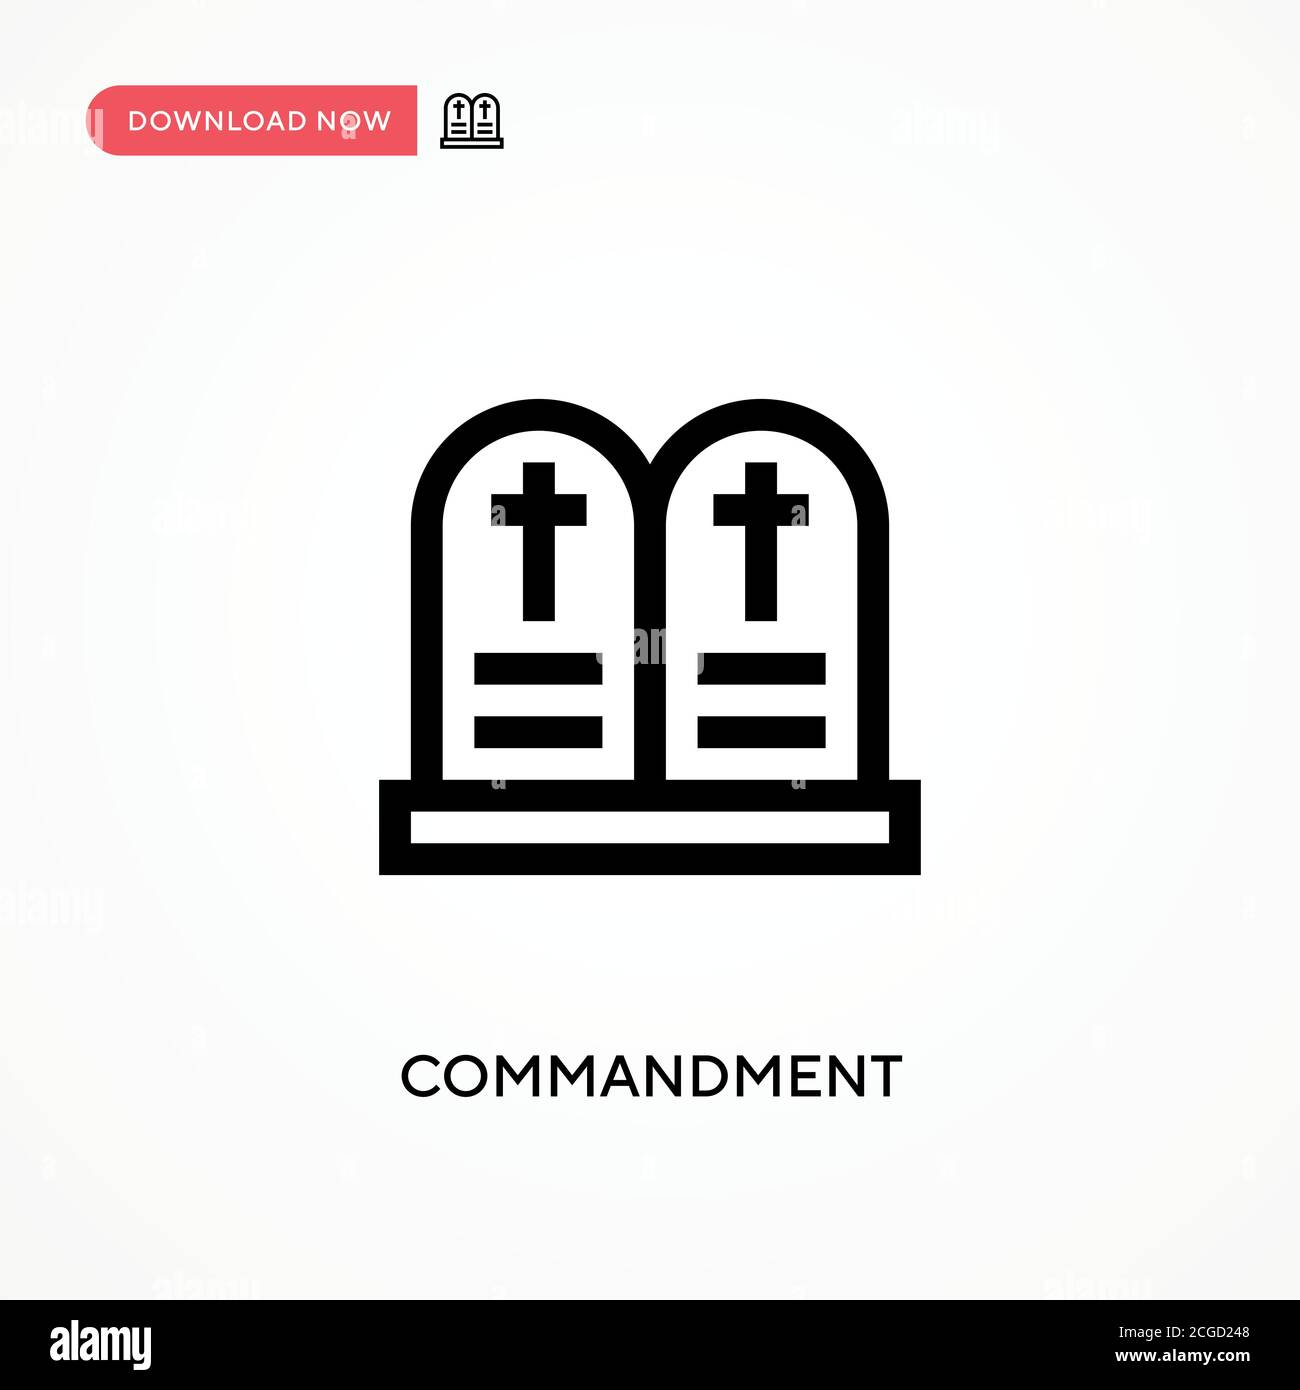 Commandment Simple vector icon. Modern, simple flat vector illustration for web site or mobile app Stock Vector